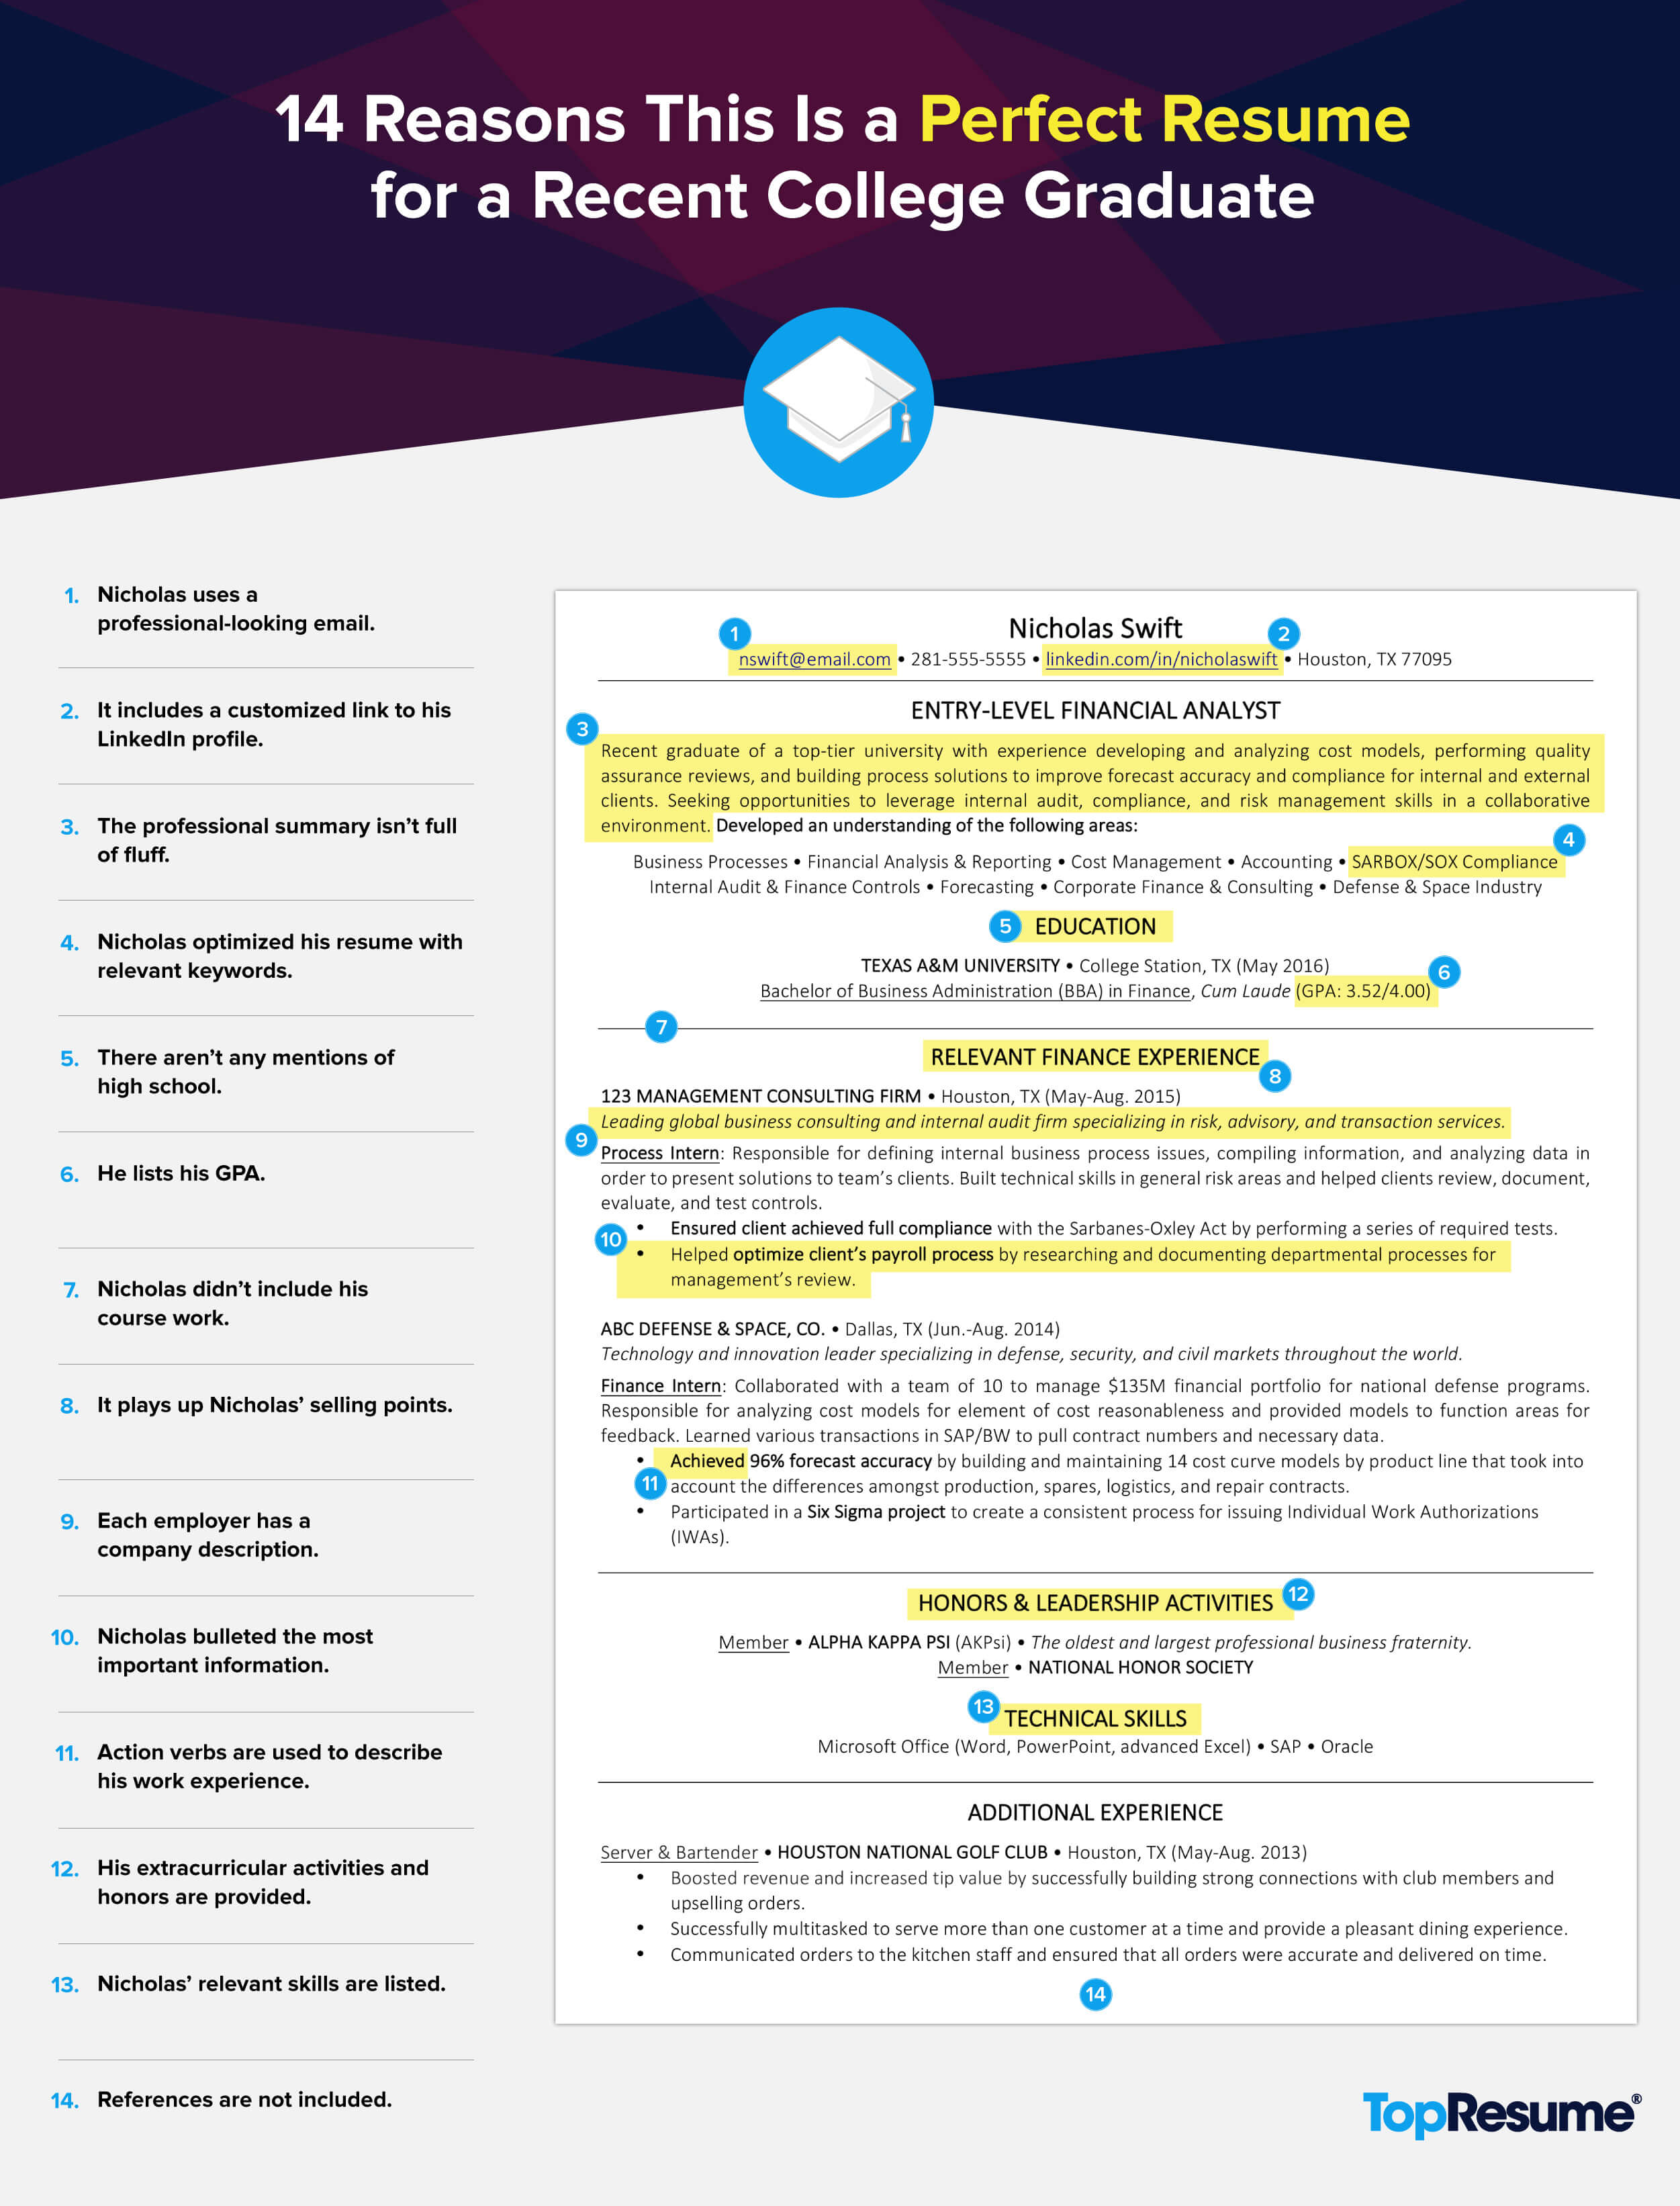 How To Make The Perfect Resume For Free 14 Reasons This Is A Perfect Recent College Graduate Resume